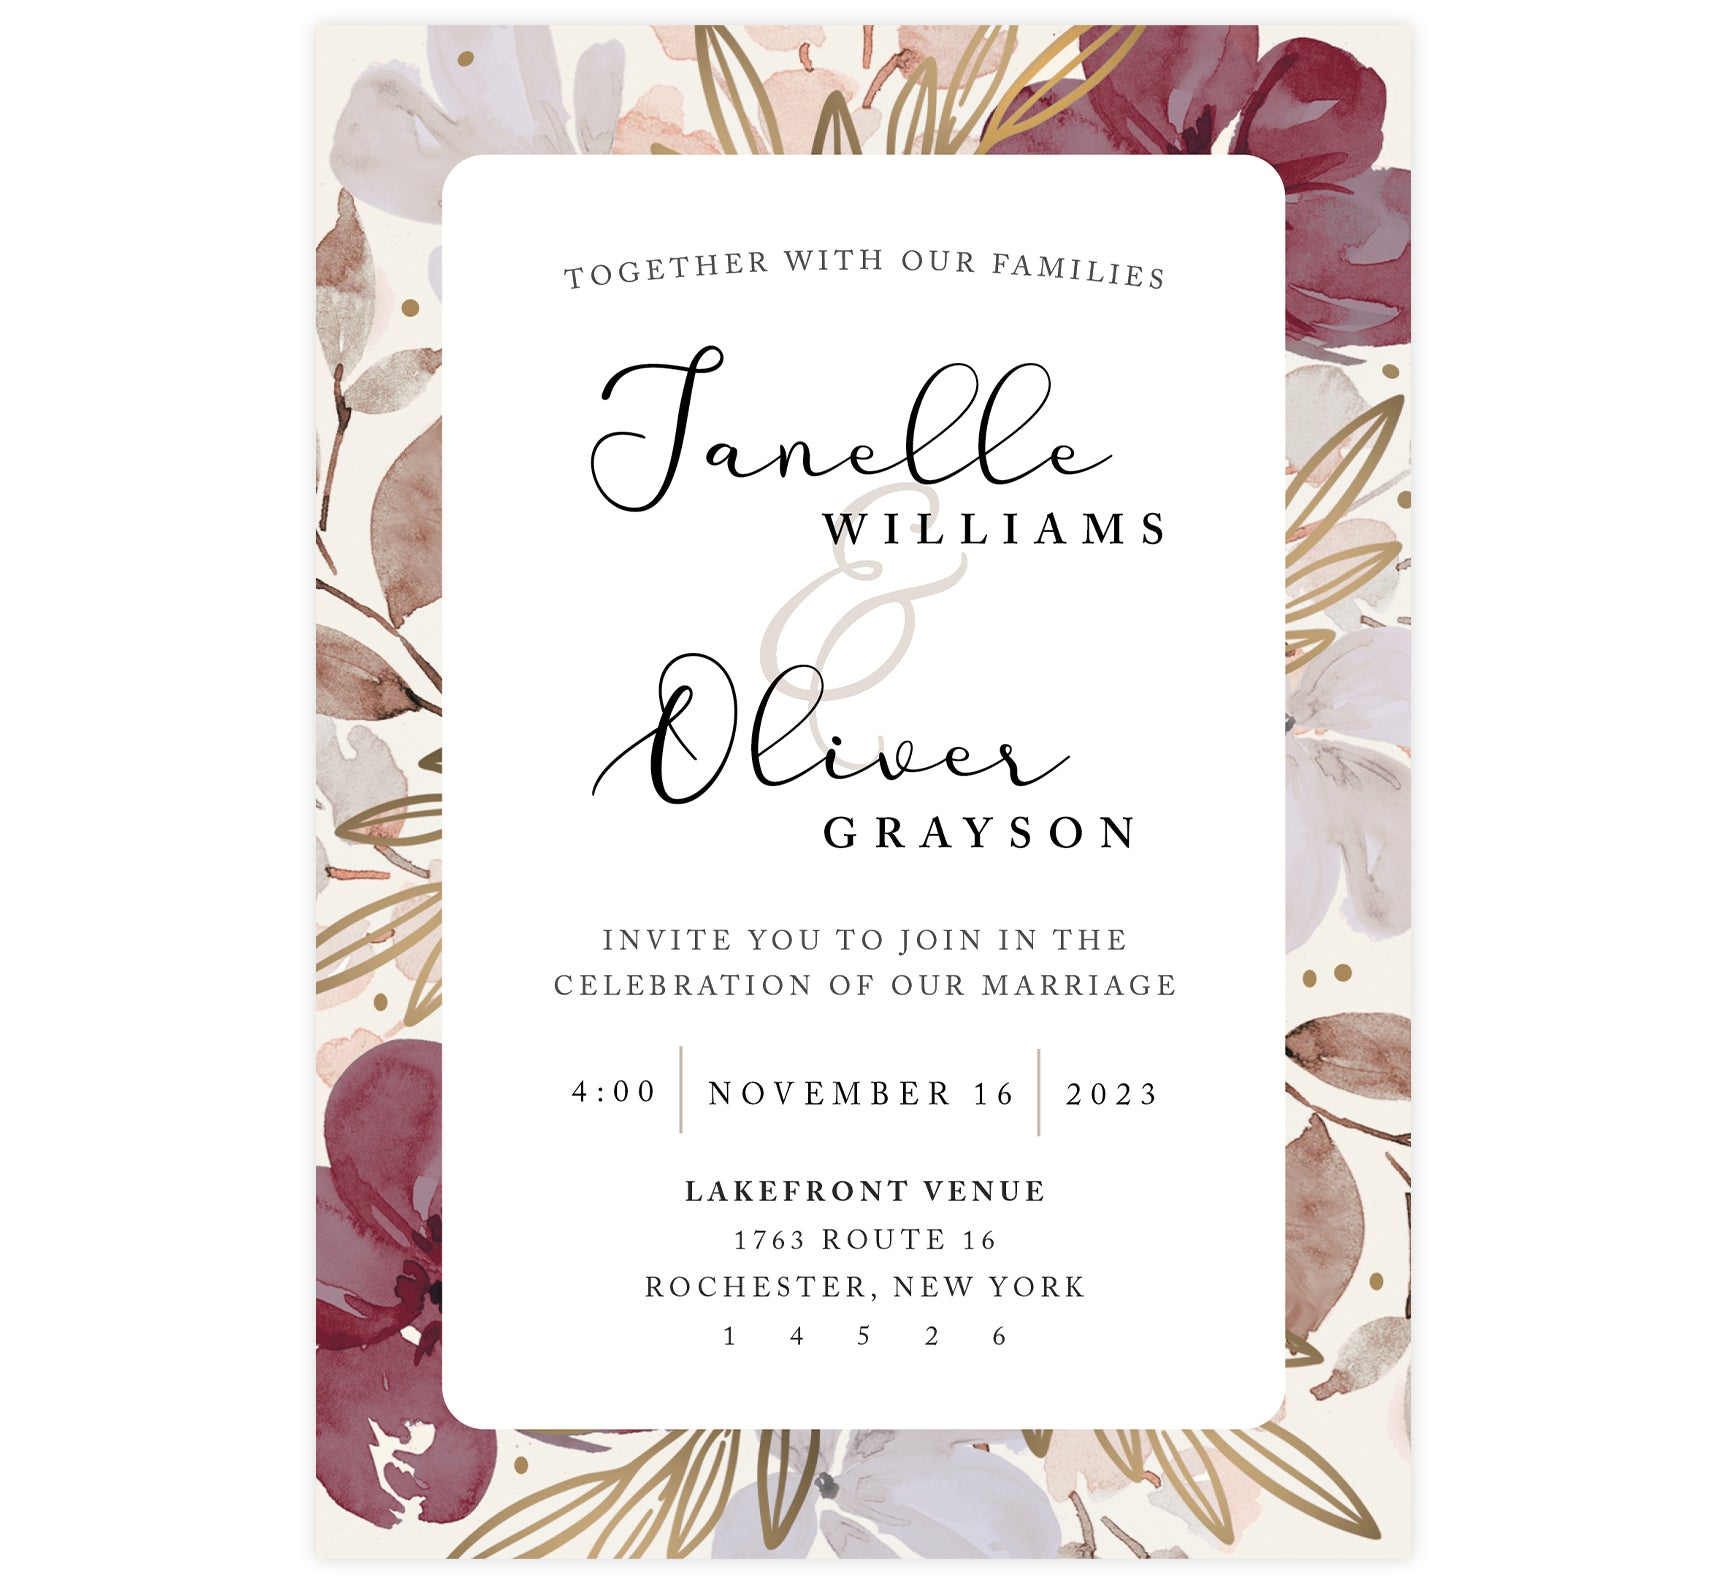 Floral Love Wedding Invitation, maroon gold and tan frame with large names